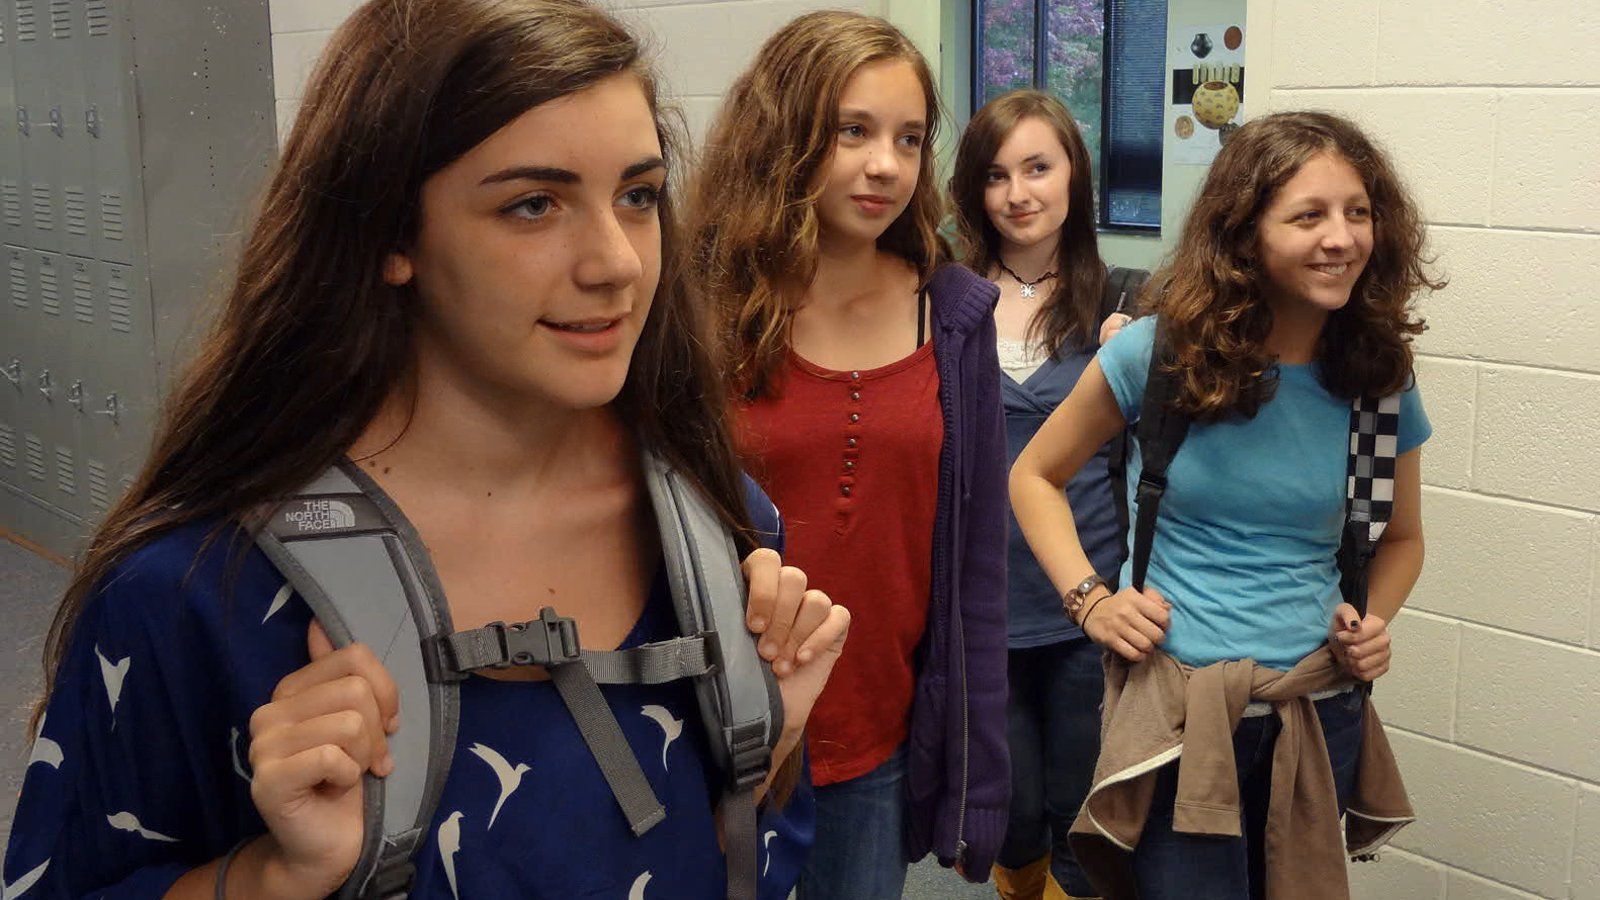 Managing Puberty, Social Challenges, and (Almost) Everything - A Video Guide for Girls